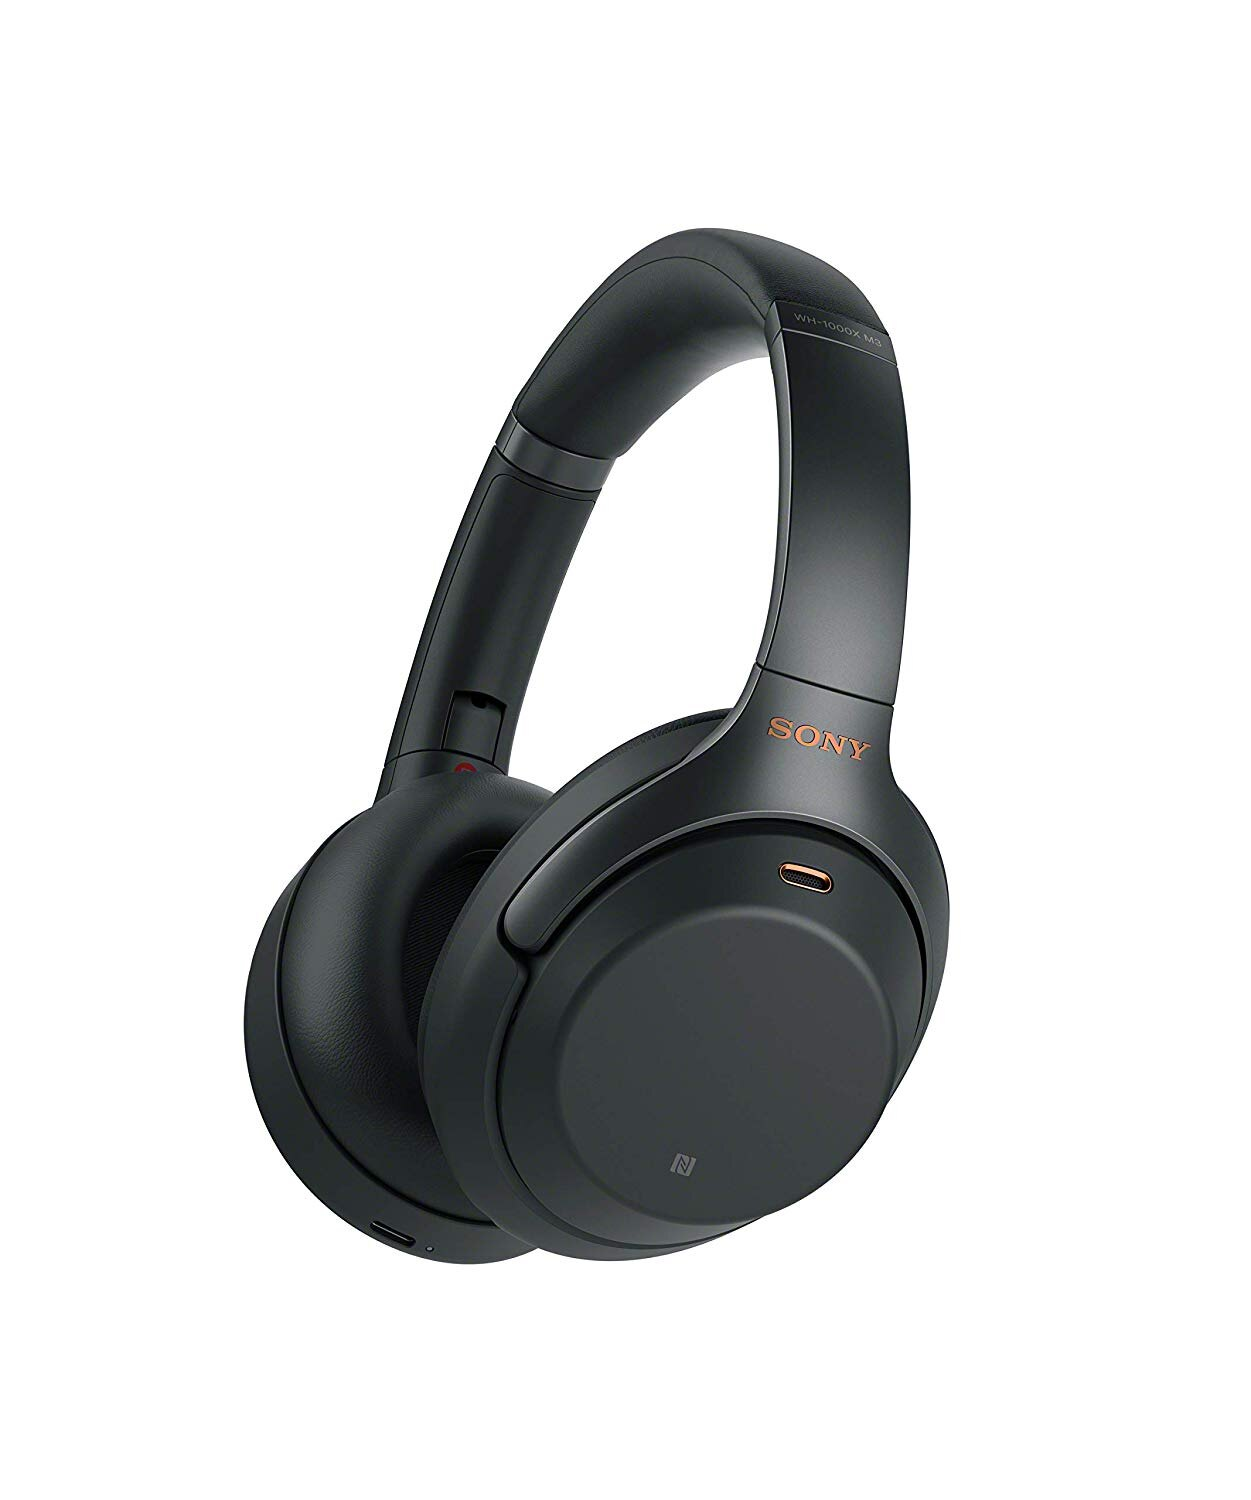 59a43afac99 Sony WH-1000XM3 Bluetooth Wireless Noise Cancelling Headphones - Black